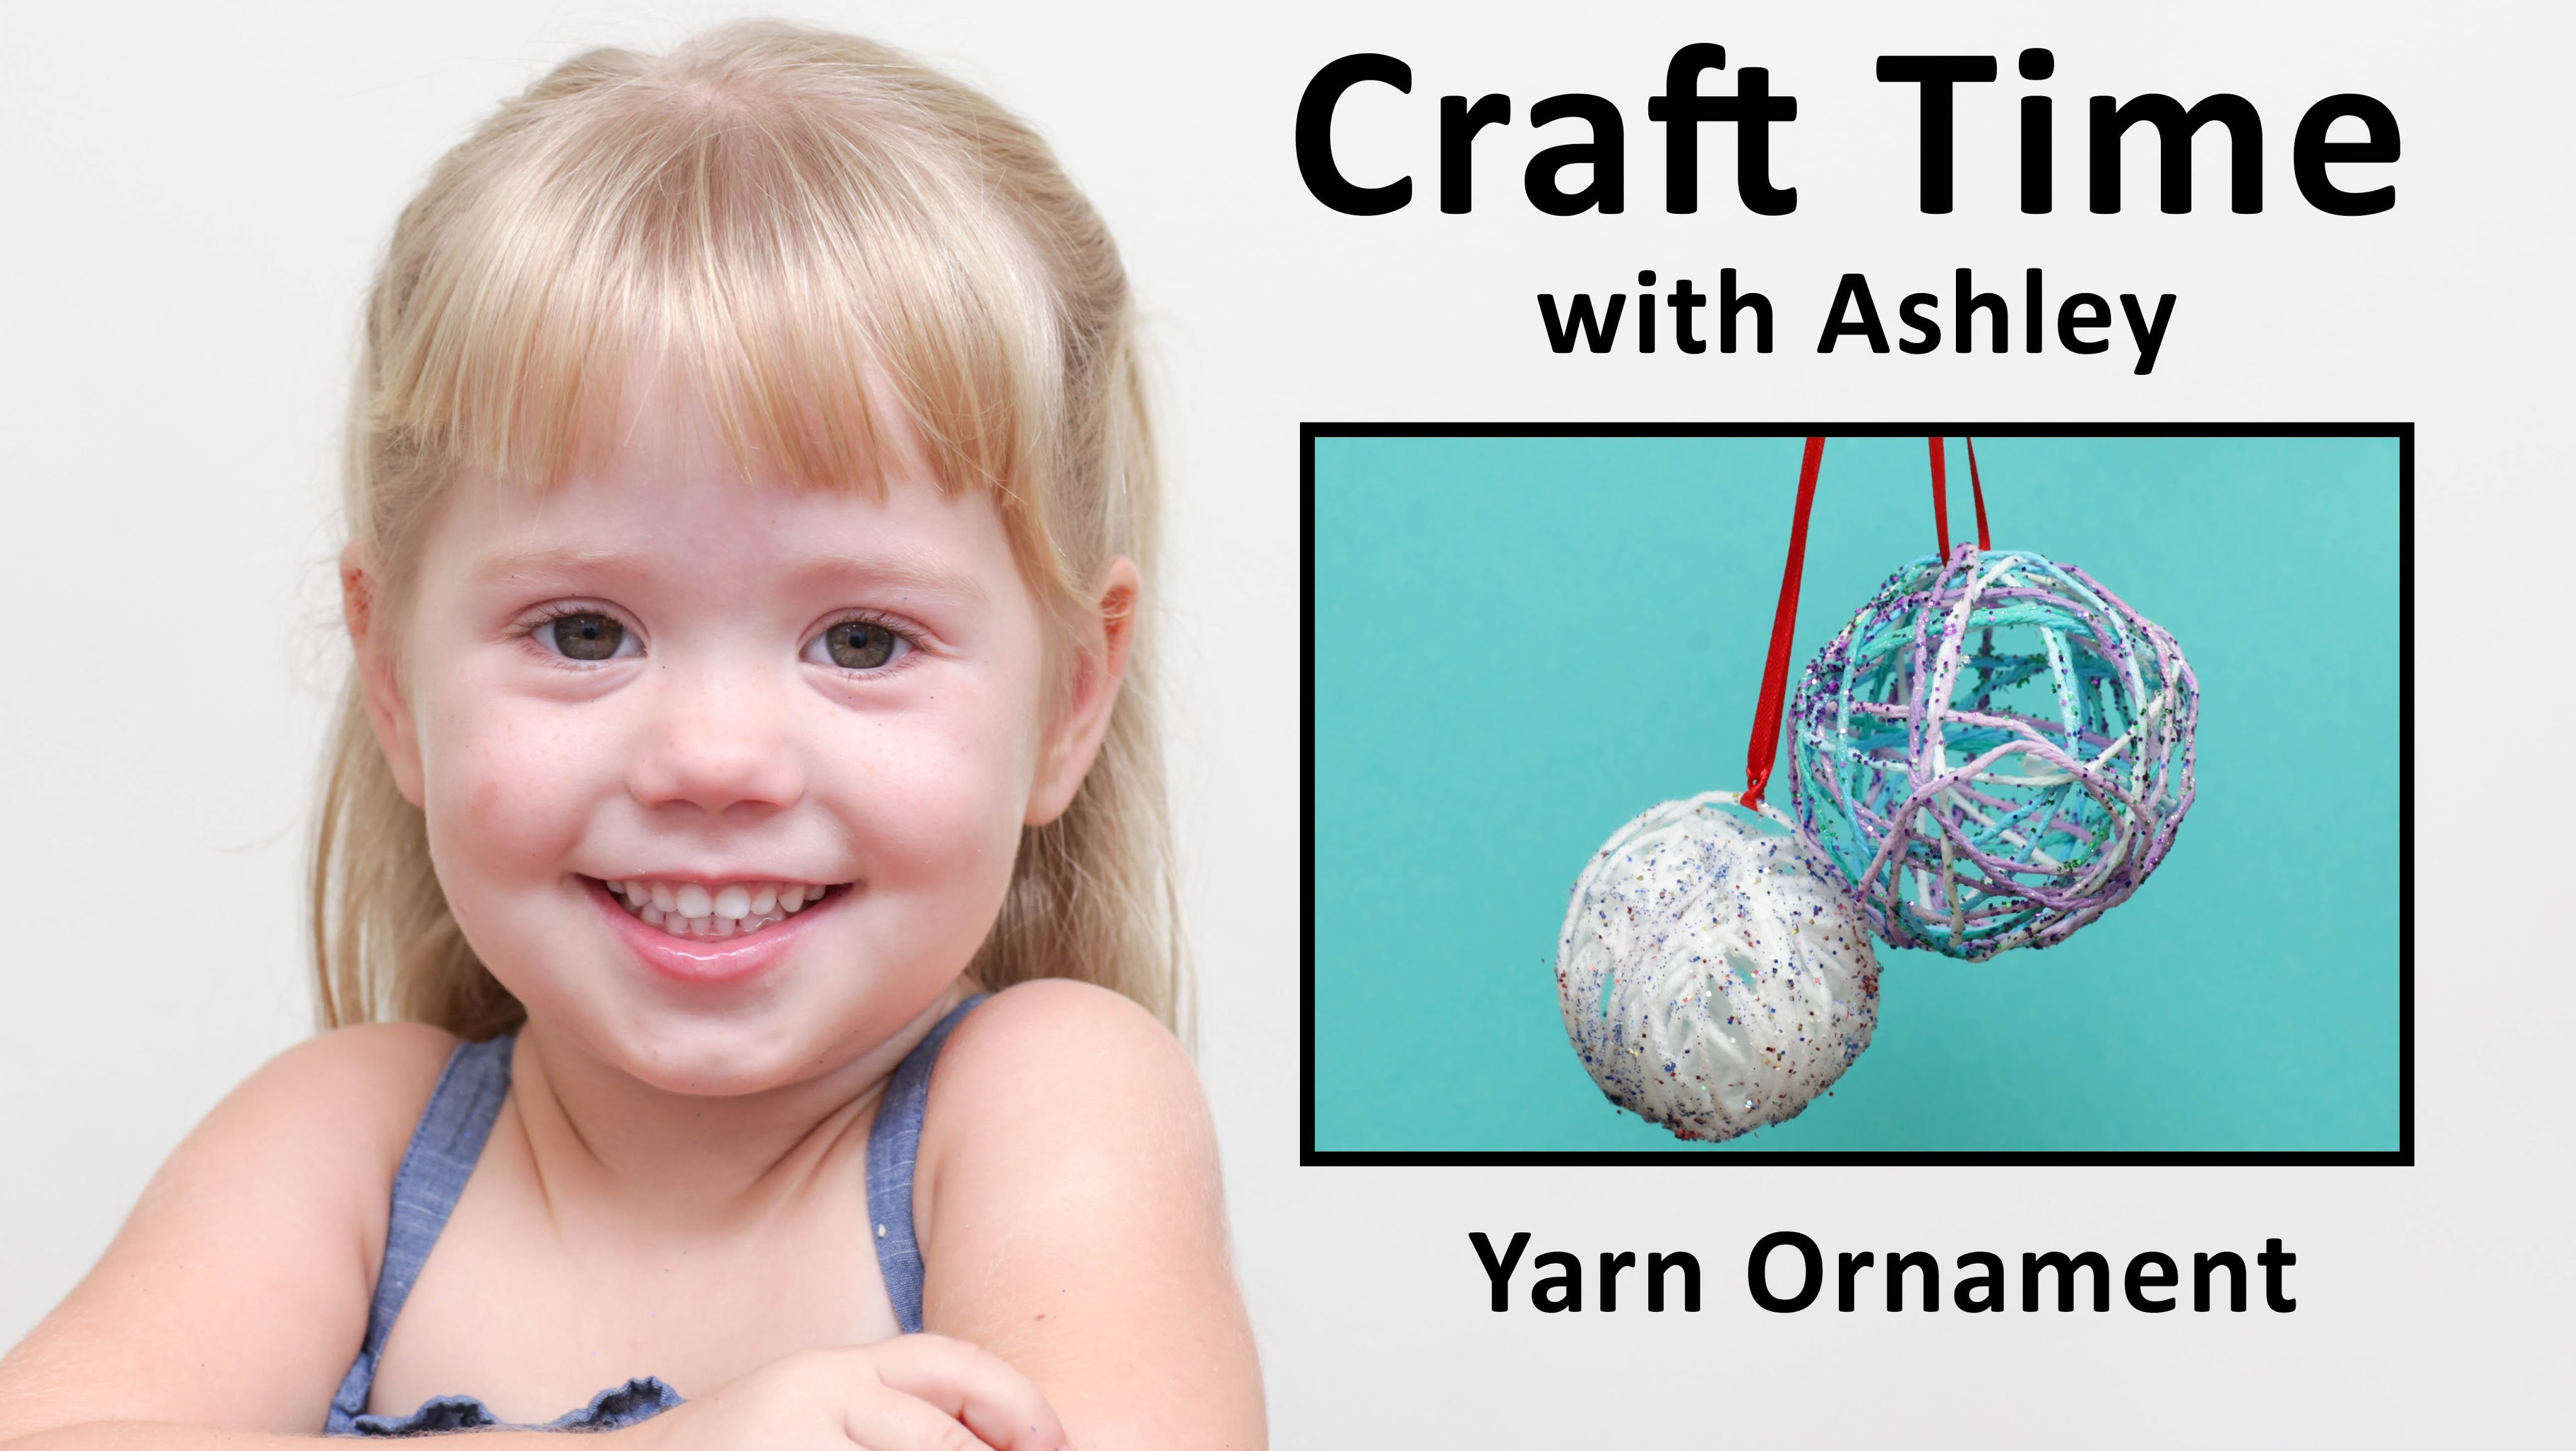 How to Make a Yarn Ornament Ball - Craft Time with Ashley